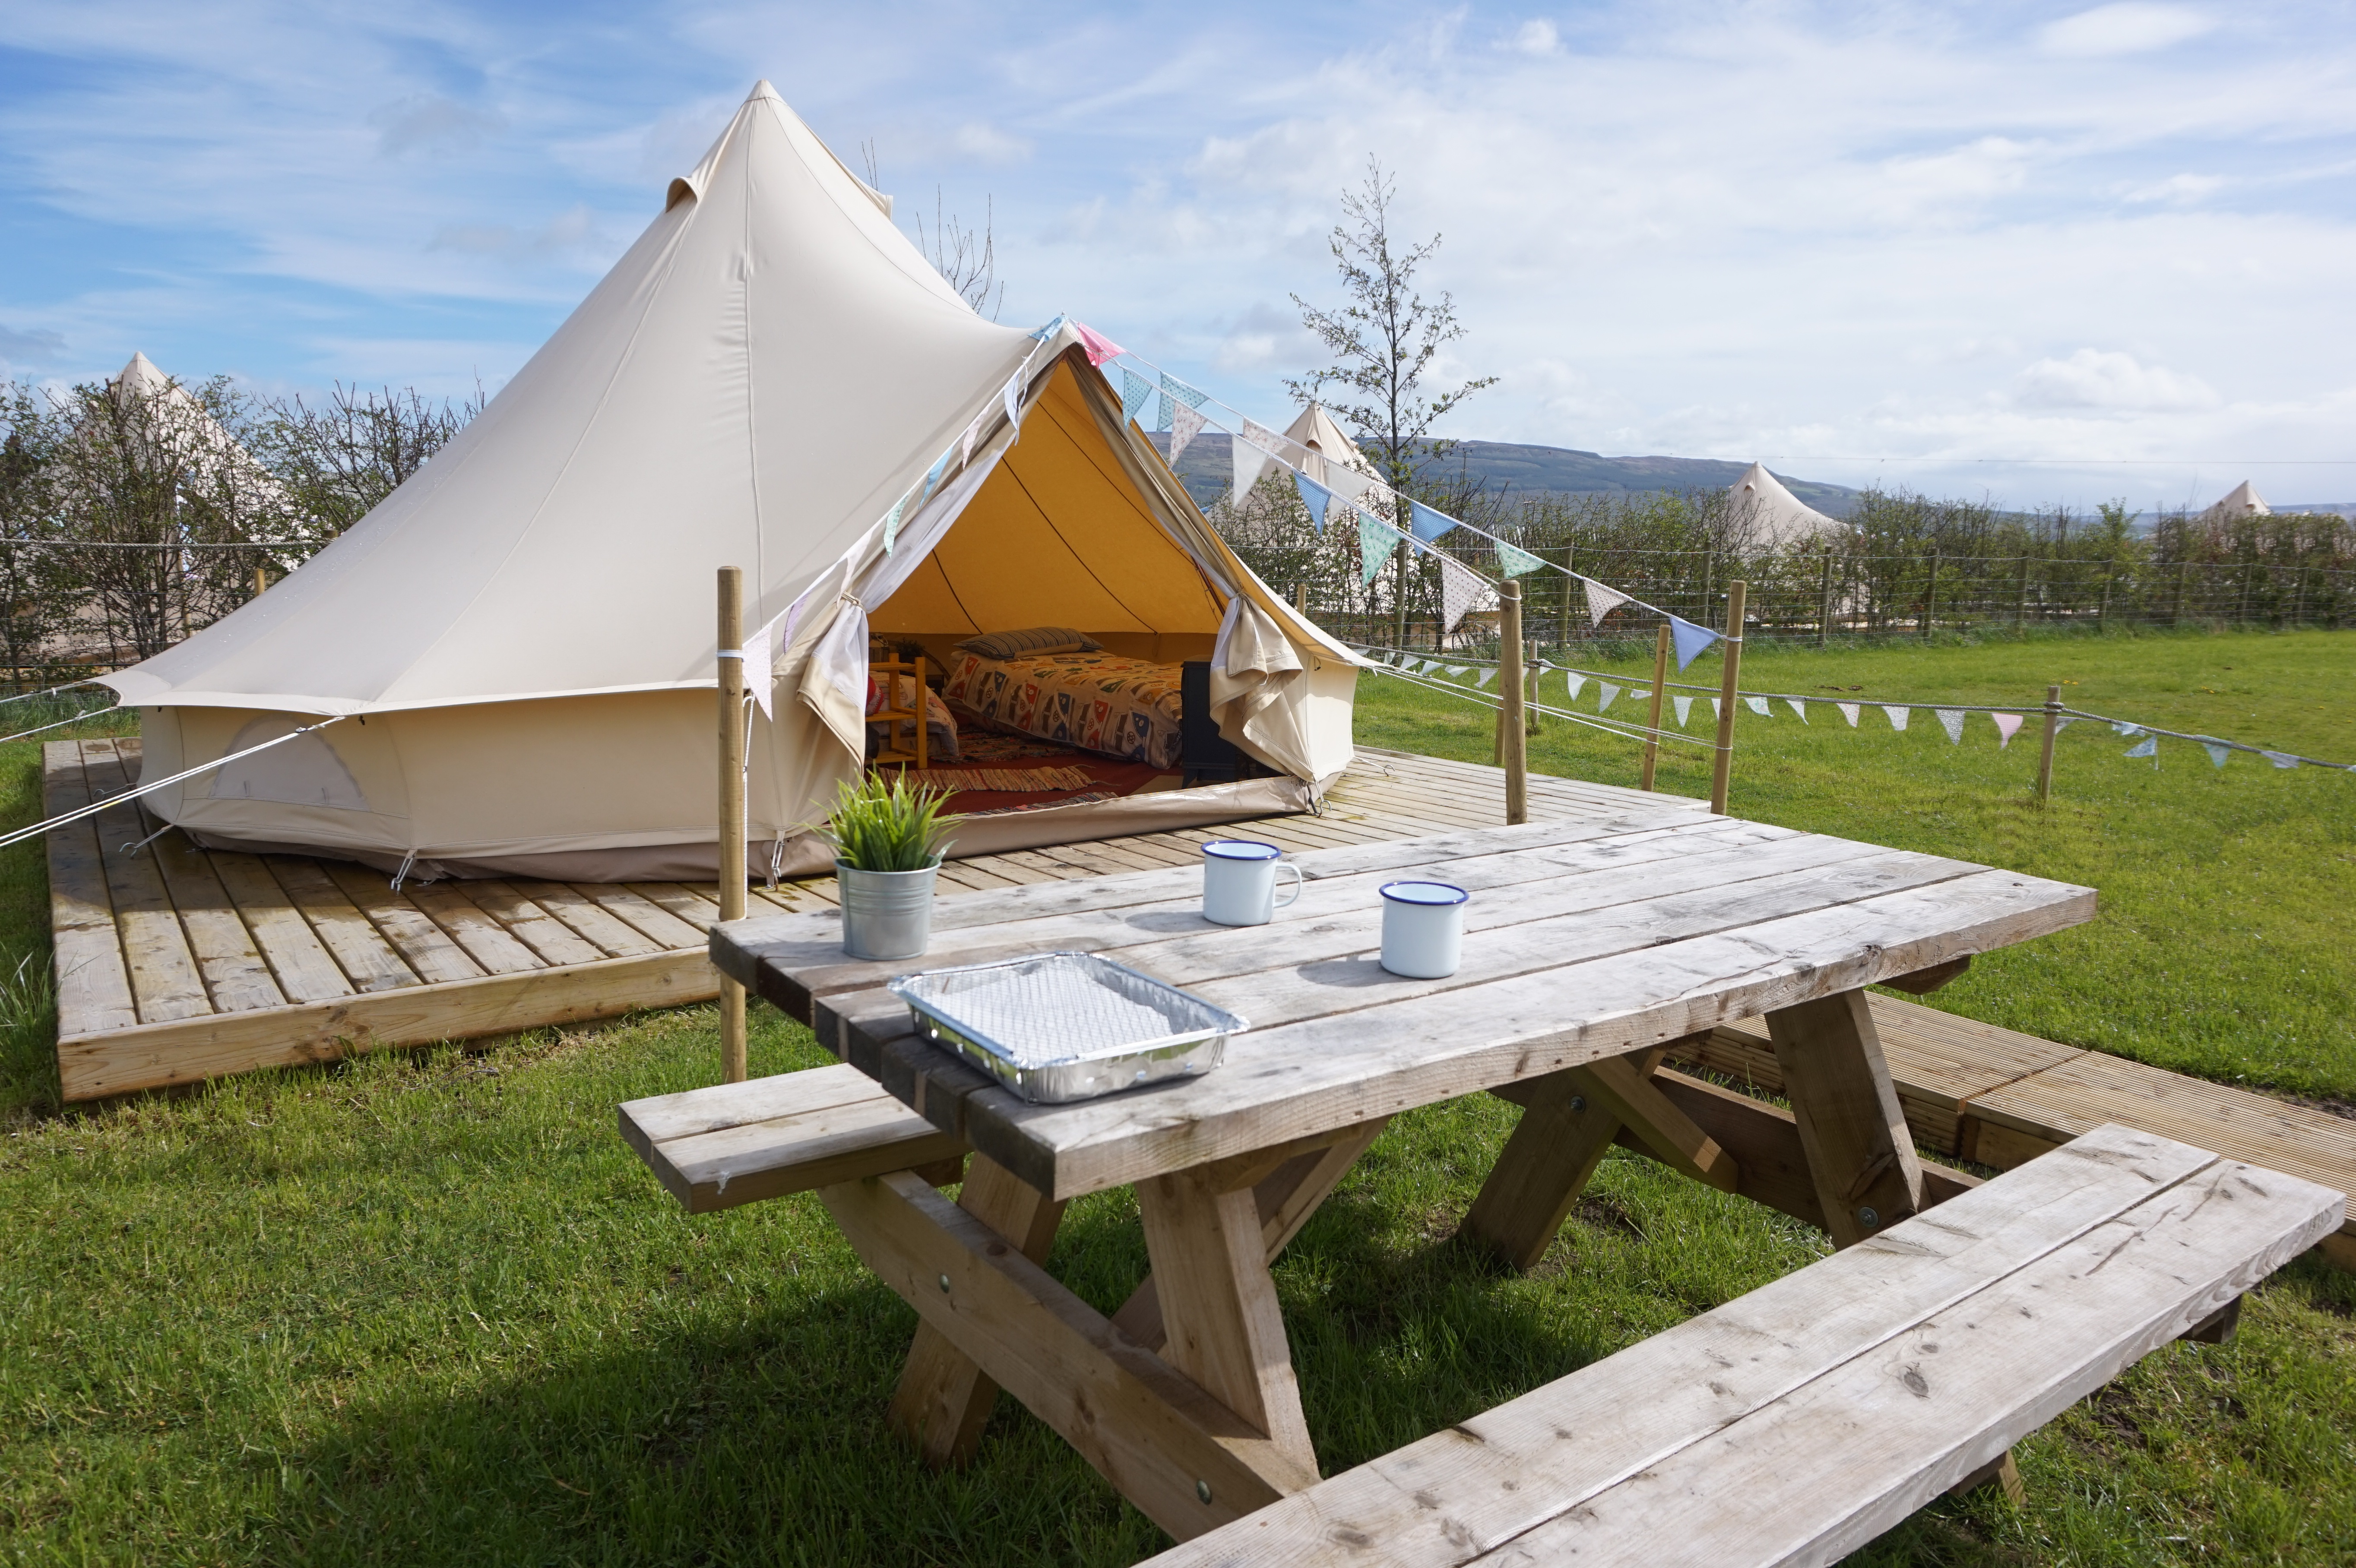 10 x Luxury Bell Tents & Carrowmena - Bell Tents Glamping in Northern Ireland